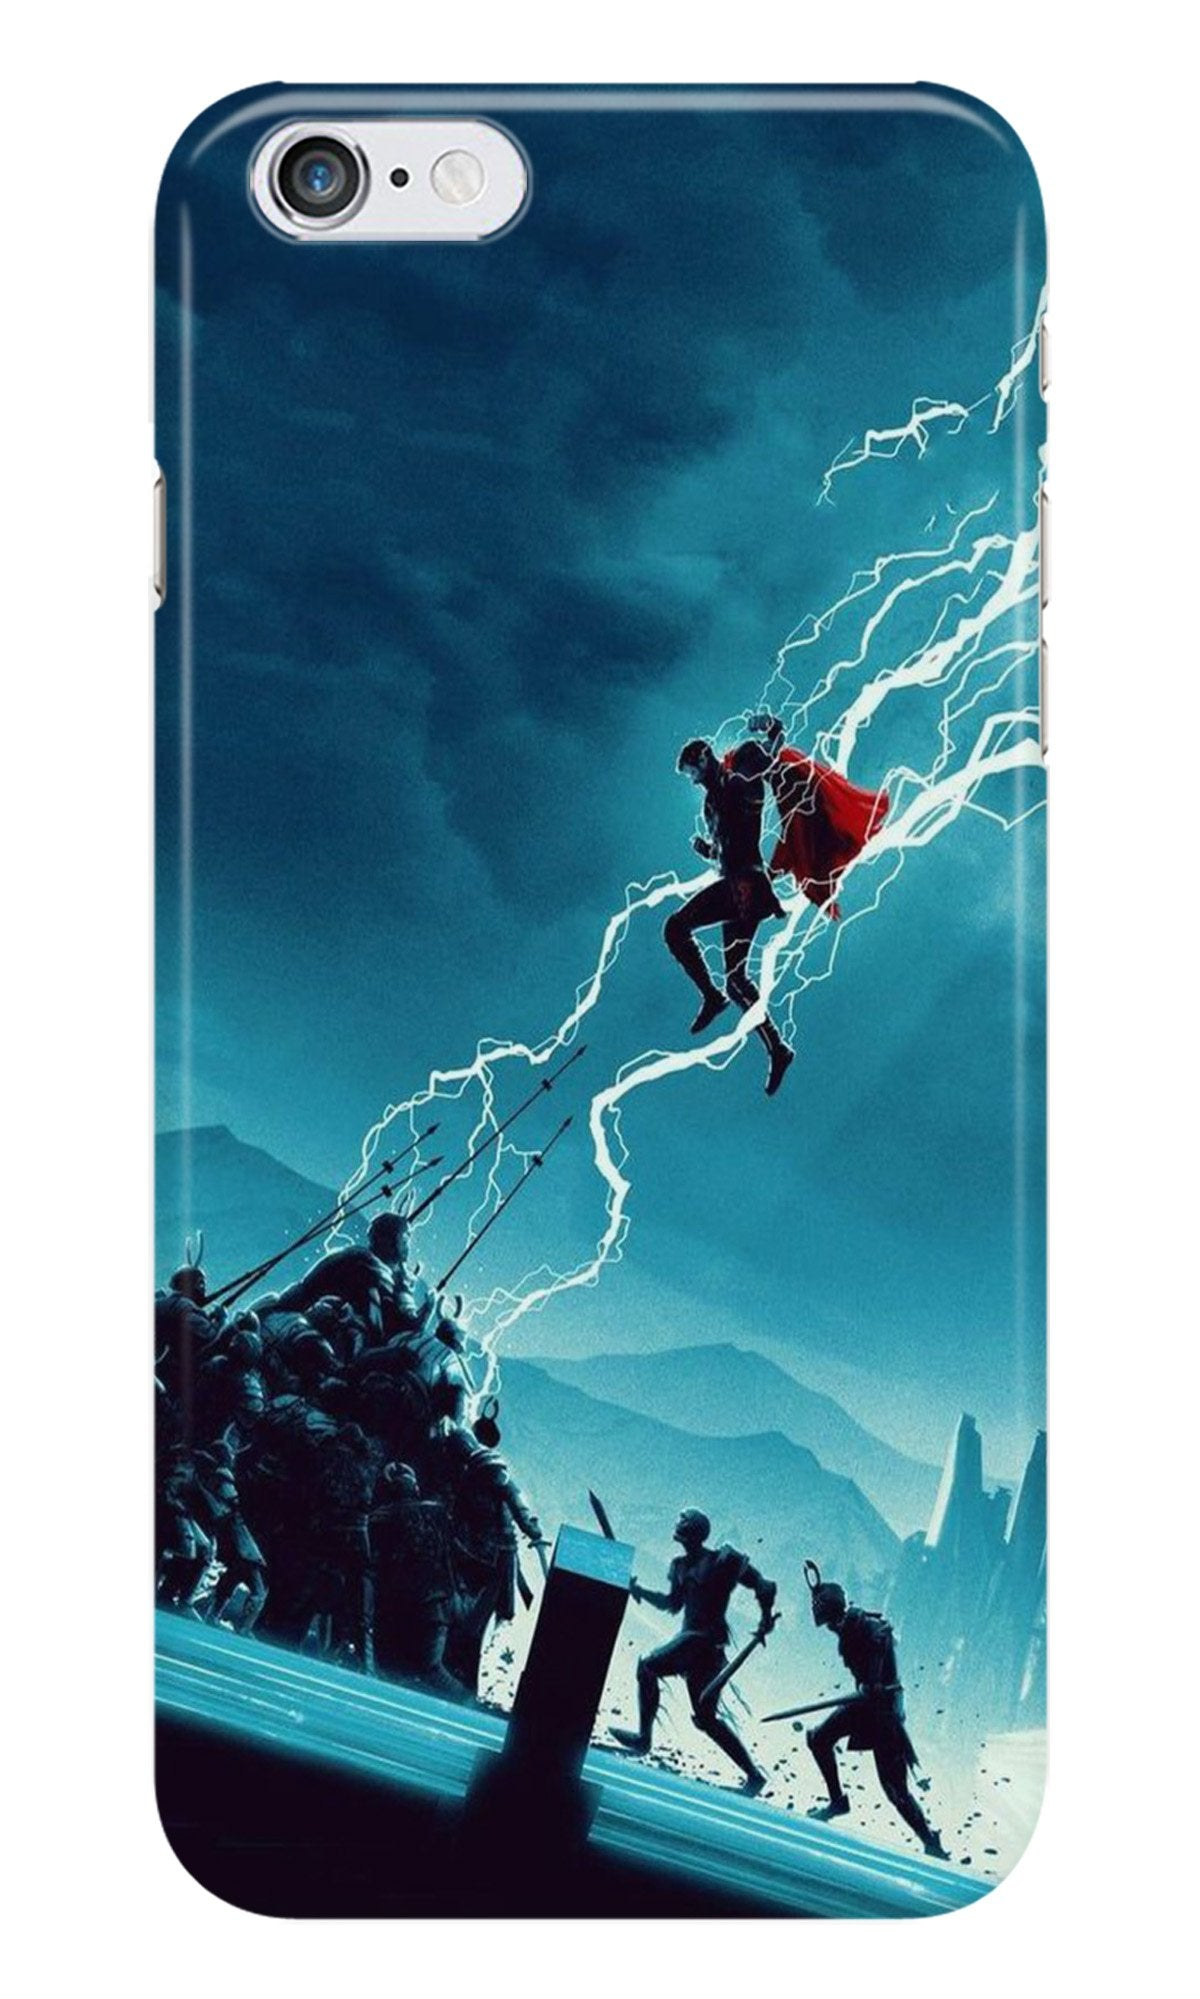 Thor Avengers Case for Iphone 6/6S (Design No. 243)